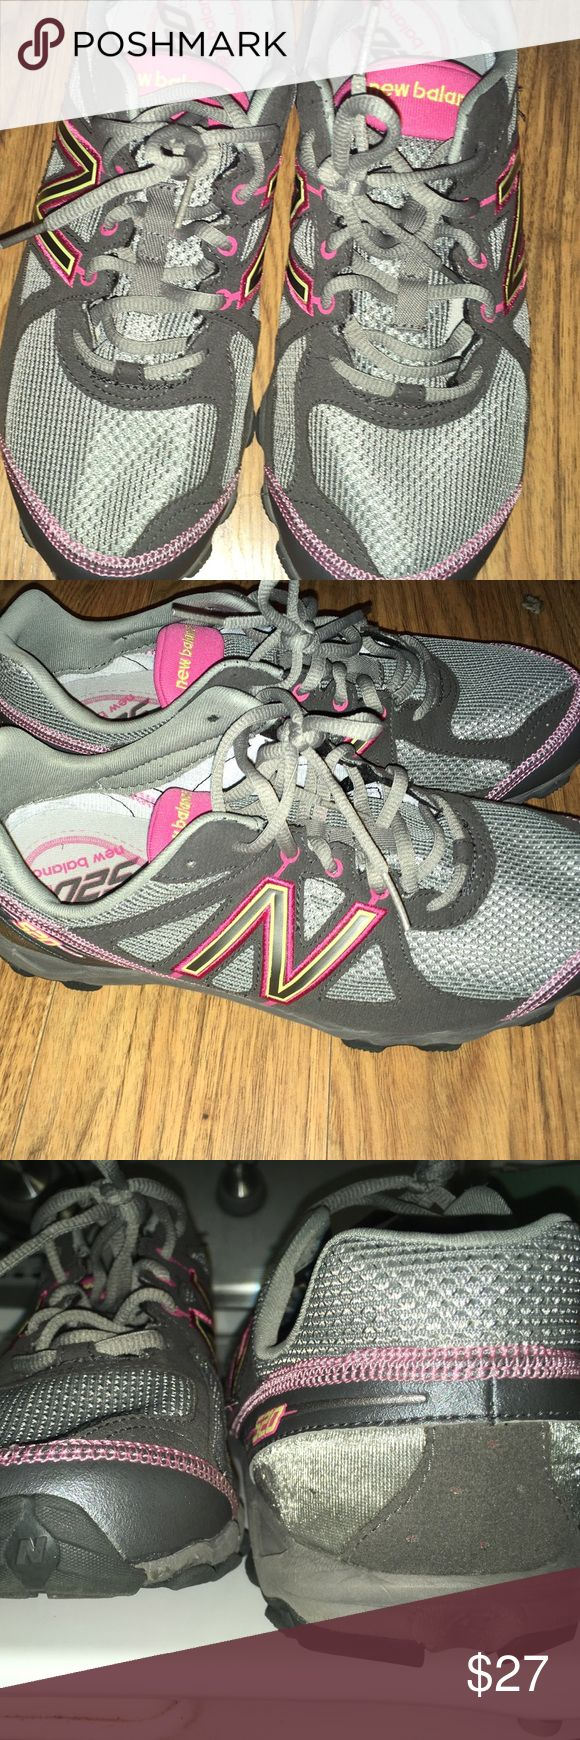 New Balance 520 New Balance pink and gray 520 running shoes in good condition they are wide width New Balance Shoes Sneakers